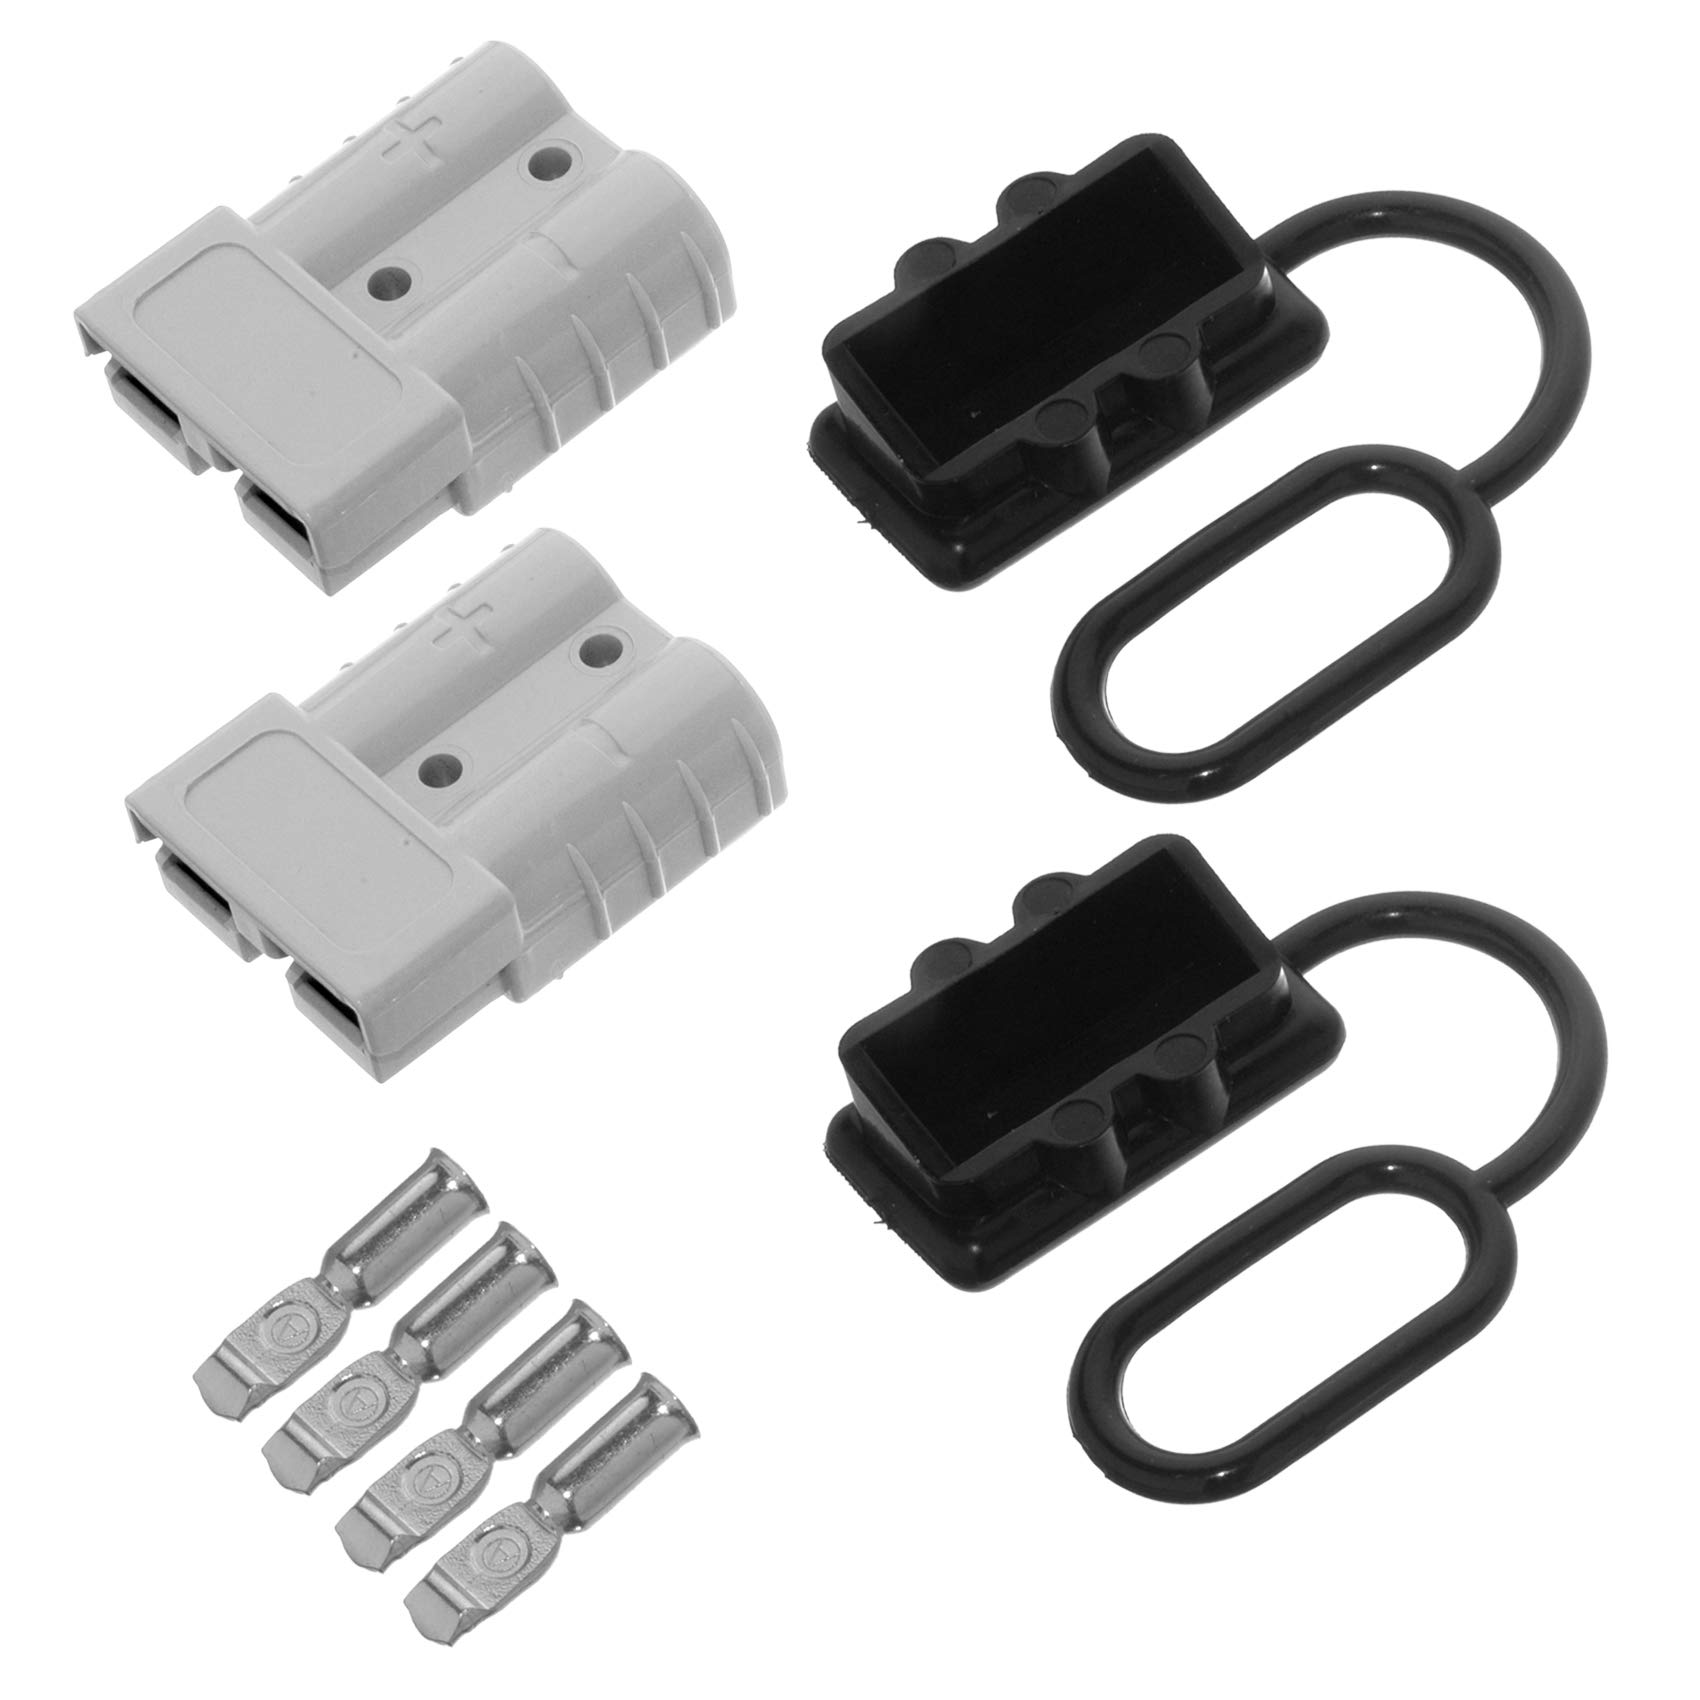 MUYI 6 10 12 AWG Jumper Cable Quick Connect 50A Battery Winch Disconnect Wire Harness Plug Kit 12-36V Battery Cable Quick Connect (50A 6-10/12AWG (2 PACK), Grey Battery Quick Connect)